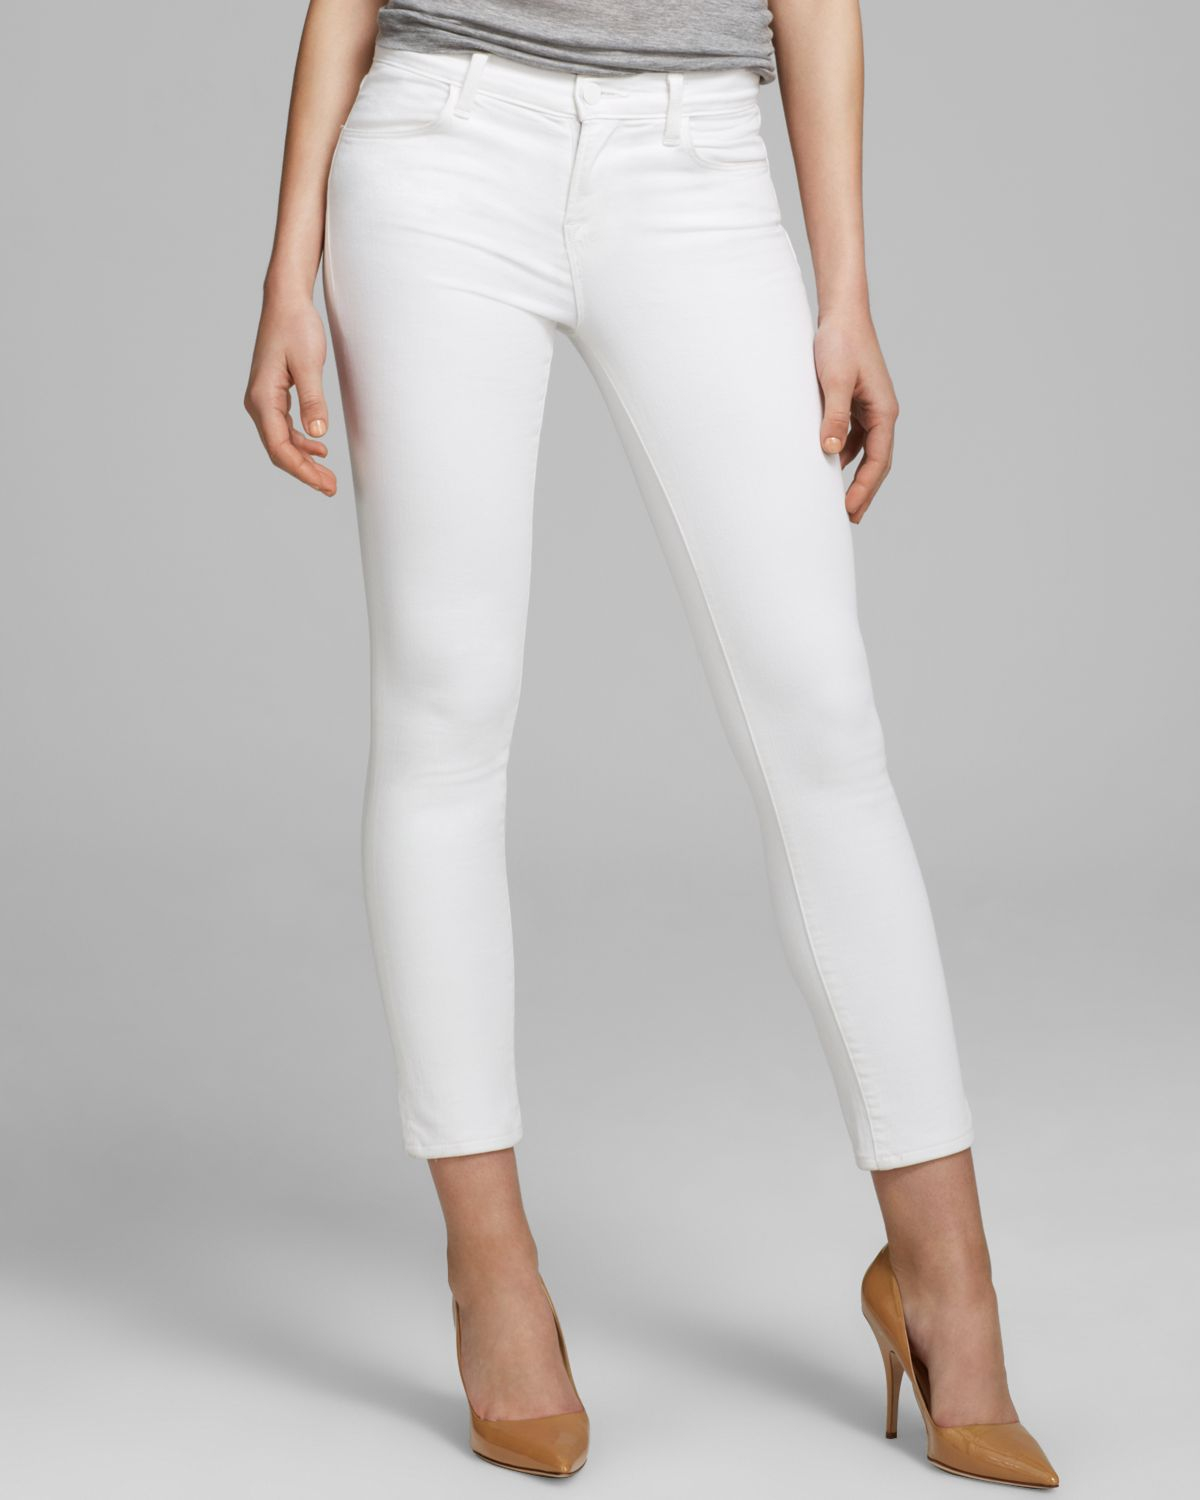 slim-fit cropped jeans - White J Brand